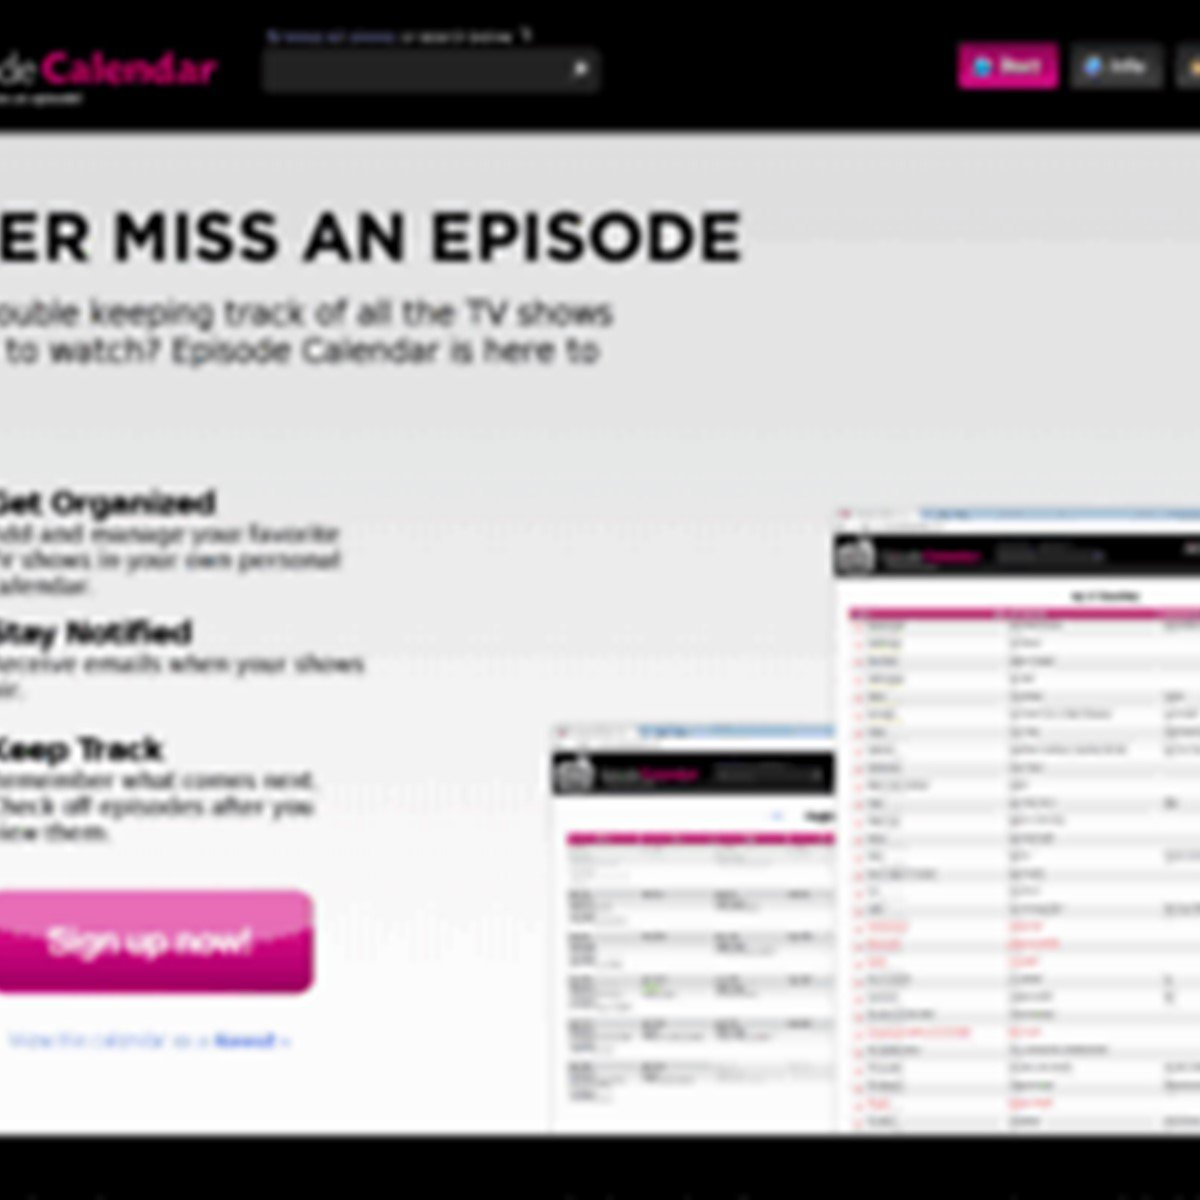 Episode Calendar.Episode Calendar Alternatives And Similar Websites And Apps